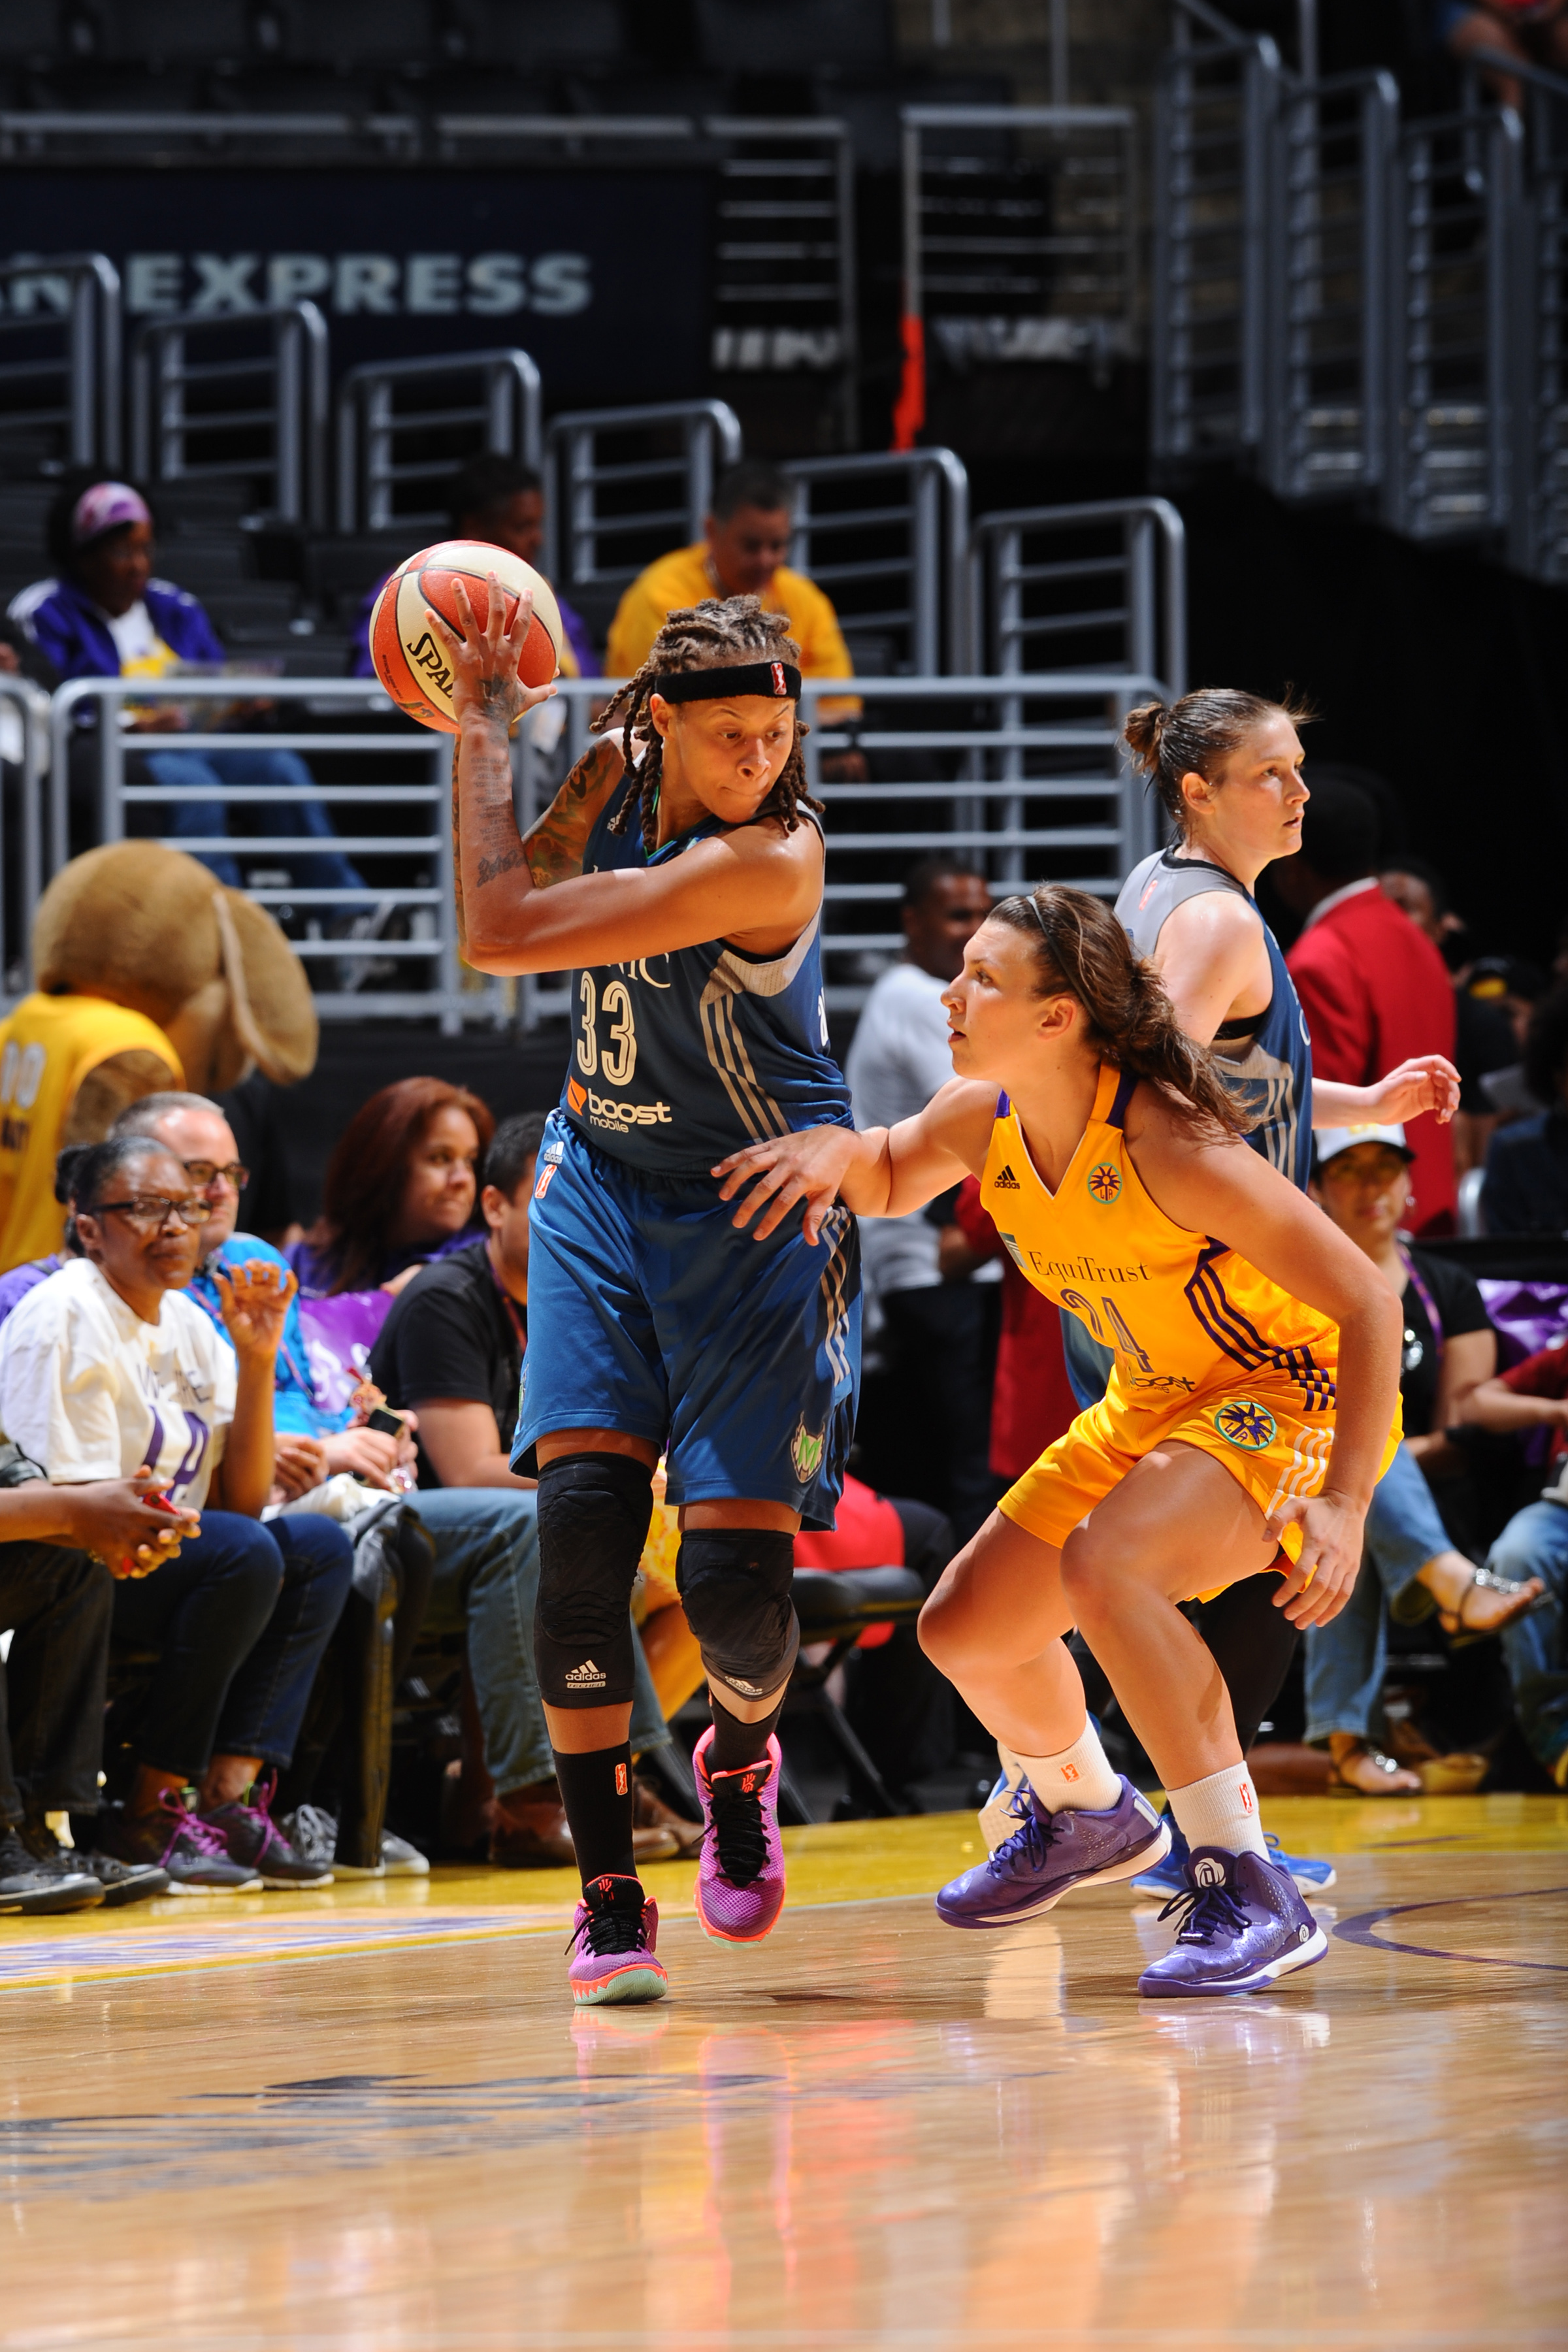 Lynx guard Seimone Augustus helped lead her team to victory, pouring in 20 points while adding three rebounds and four assists.